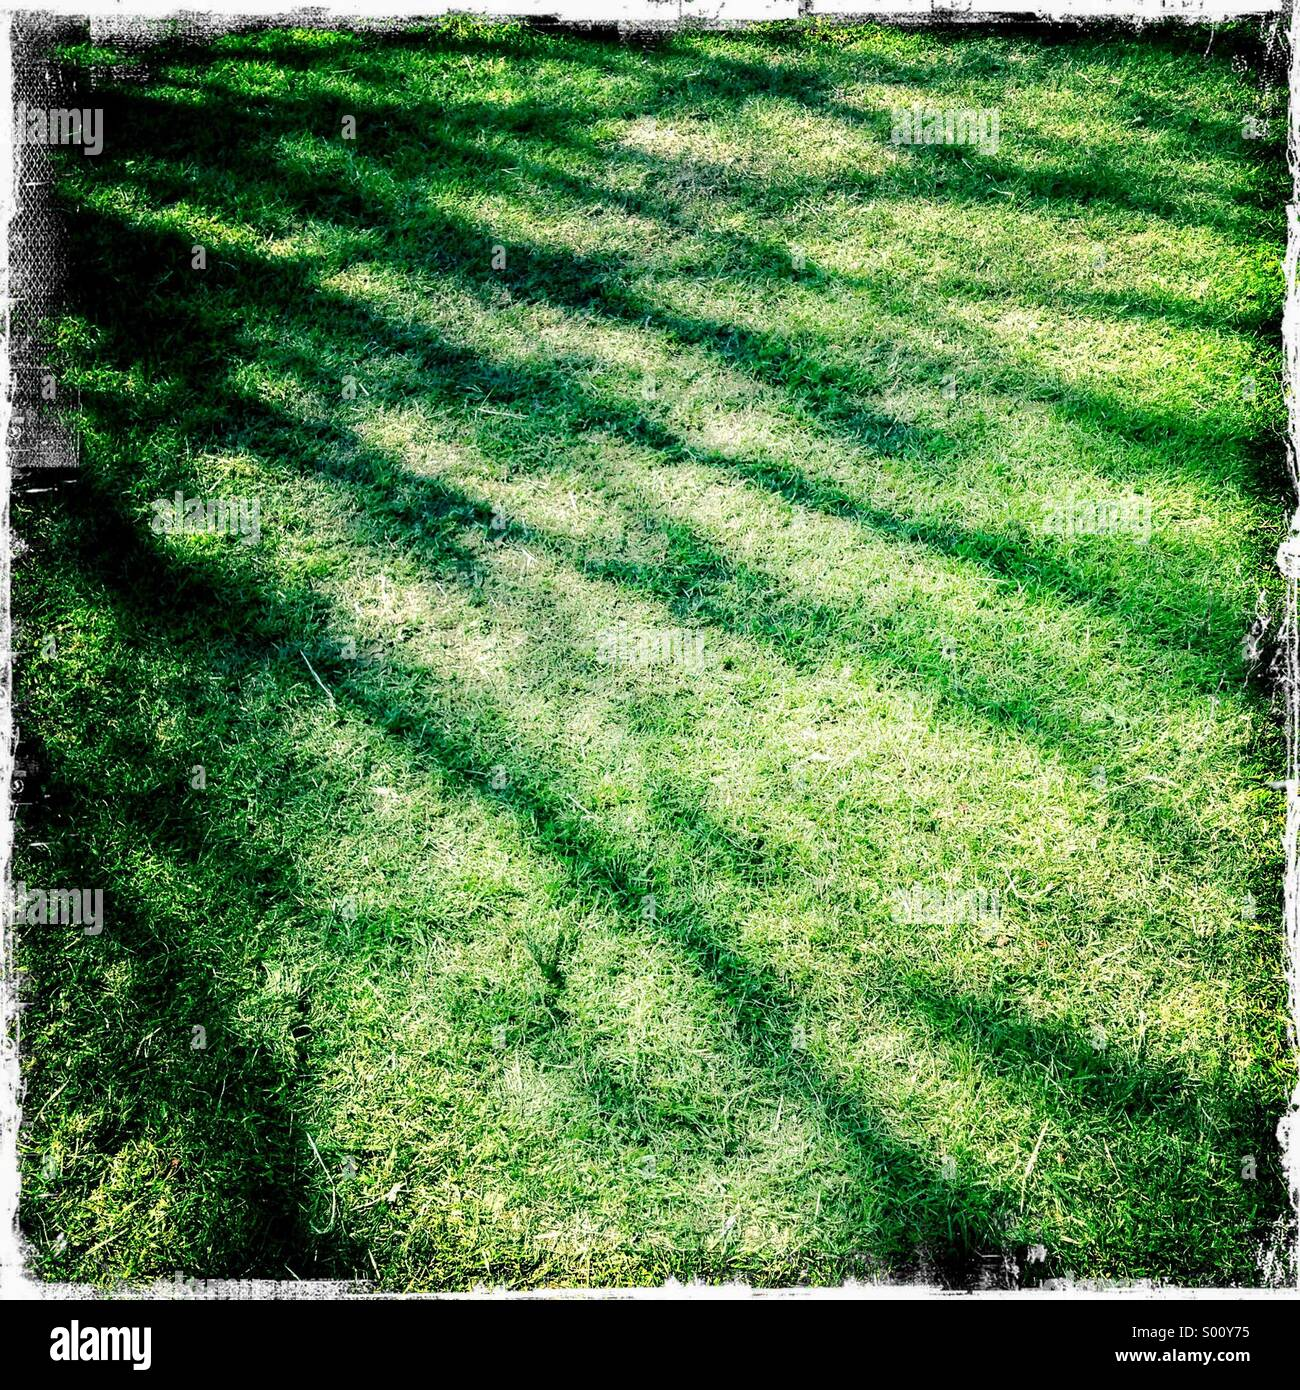 Abstract shadow of tree branches on green grass. Hipstamatic, iPhone. - Stock Image